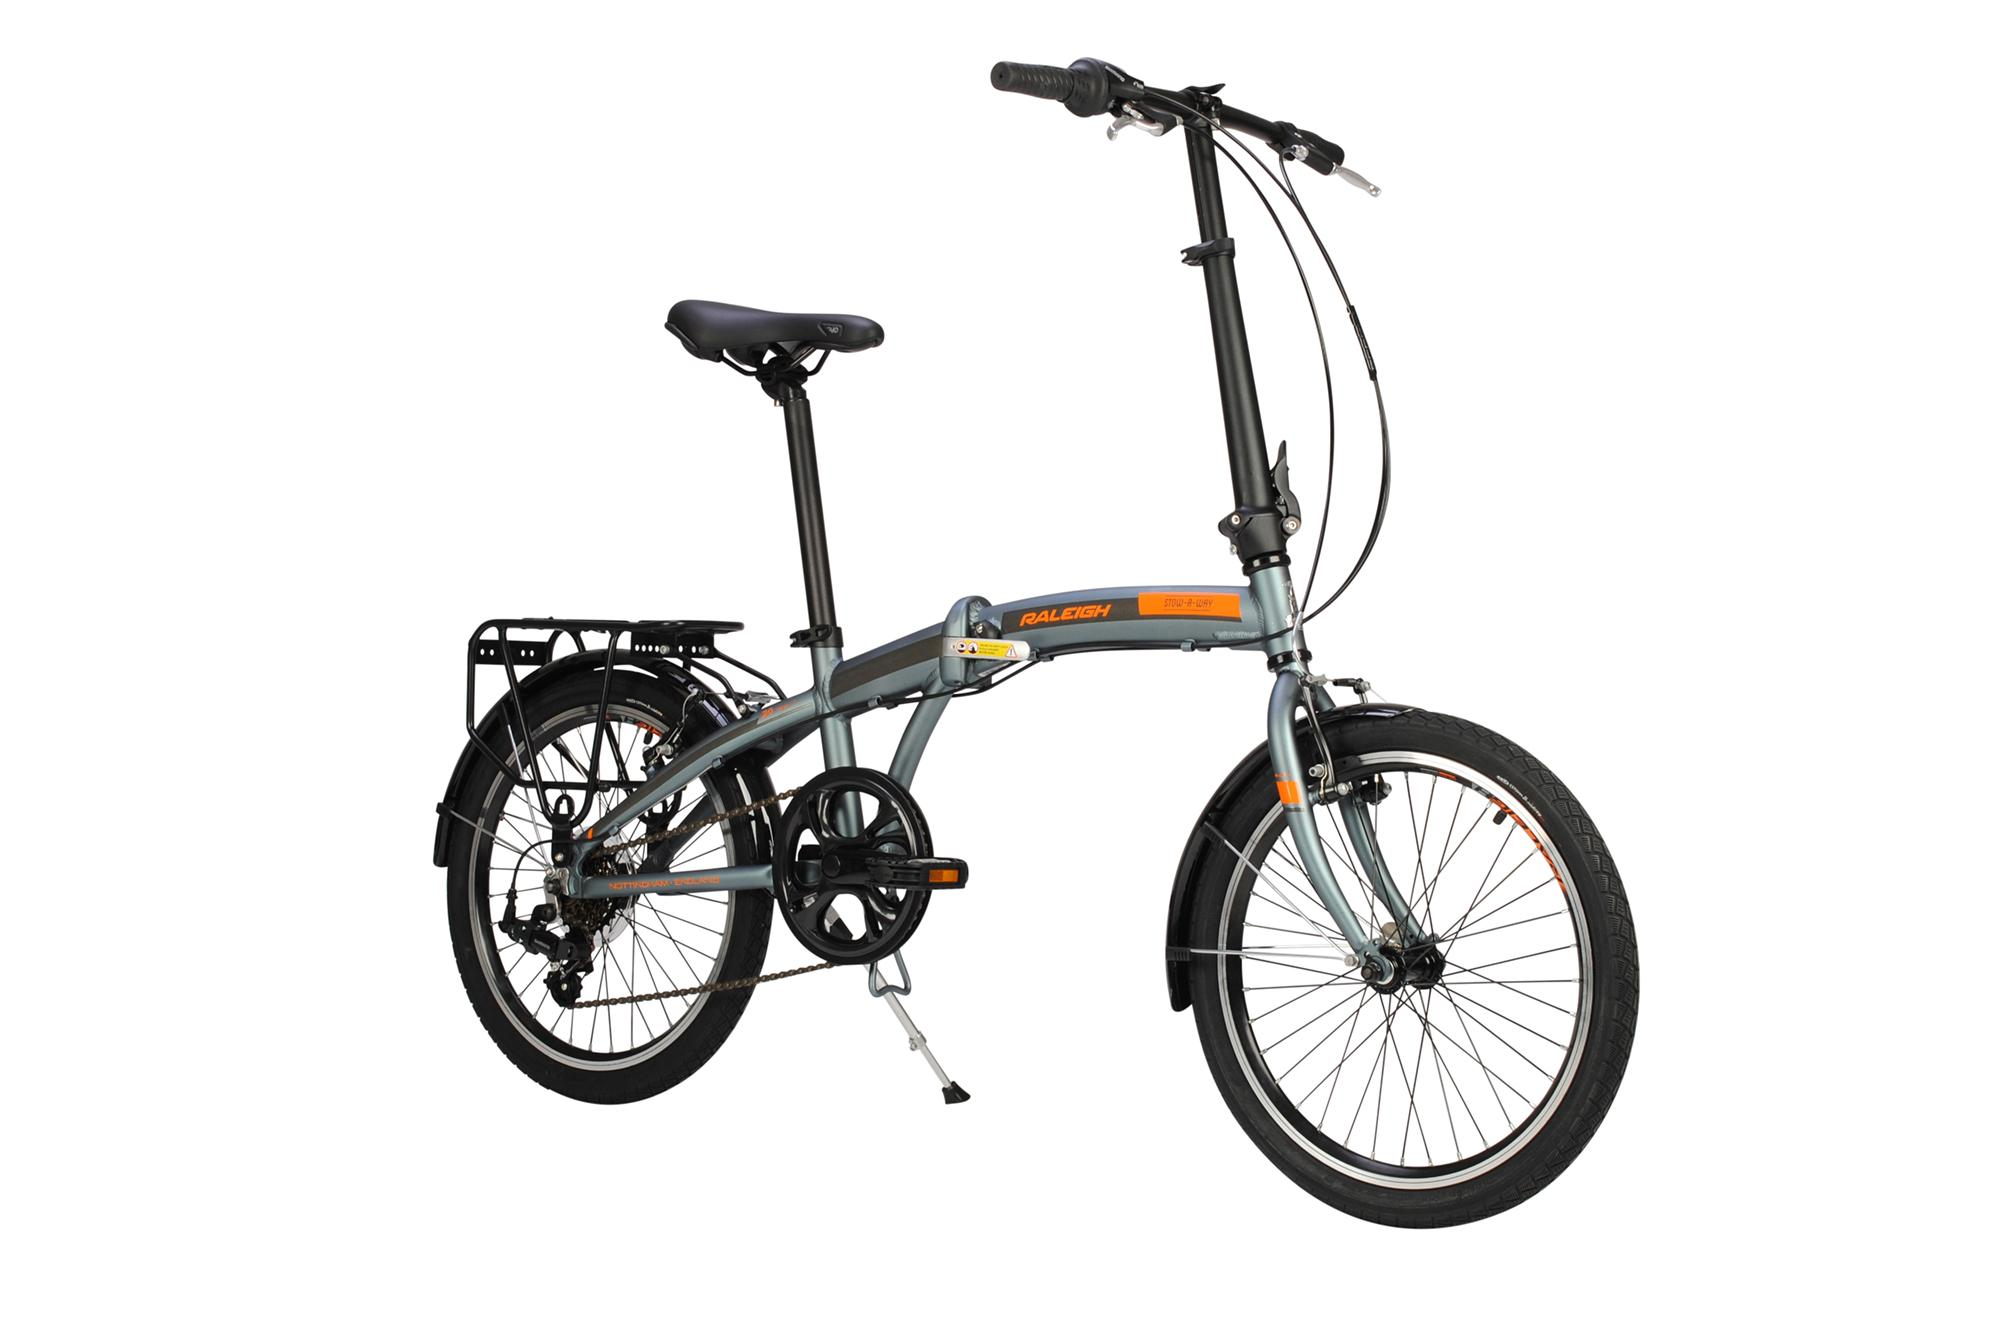 Front view of the Raleigh Stowaway folding bike